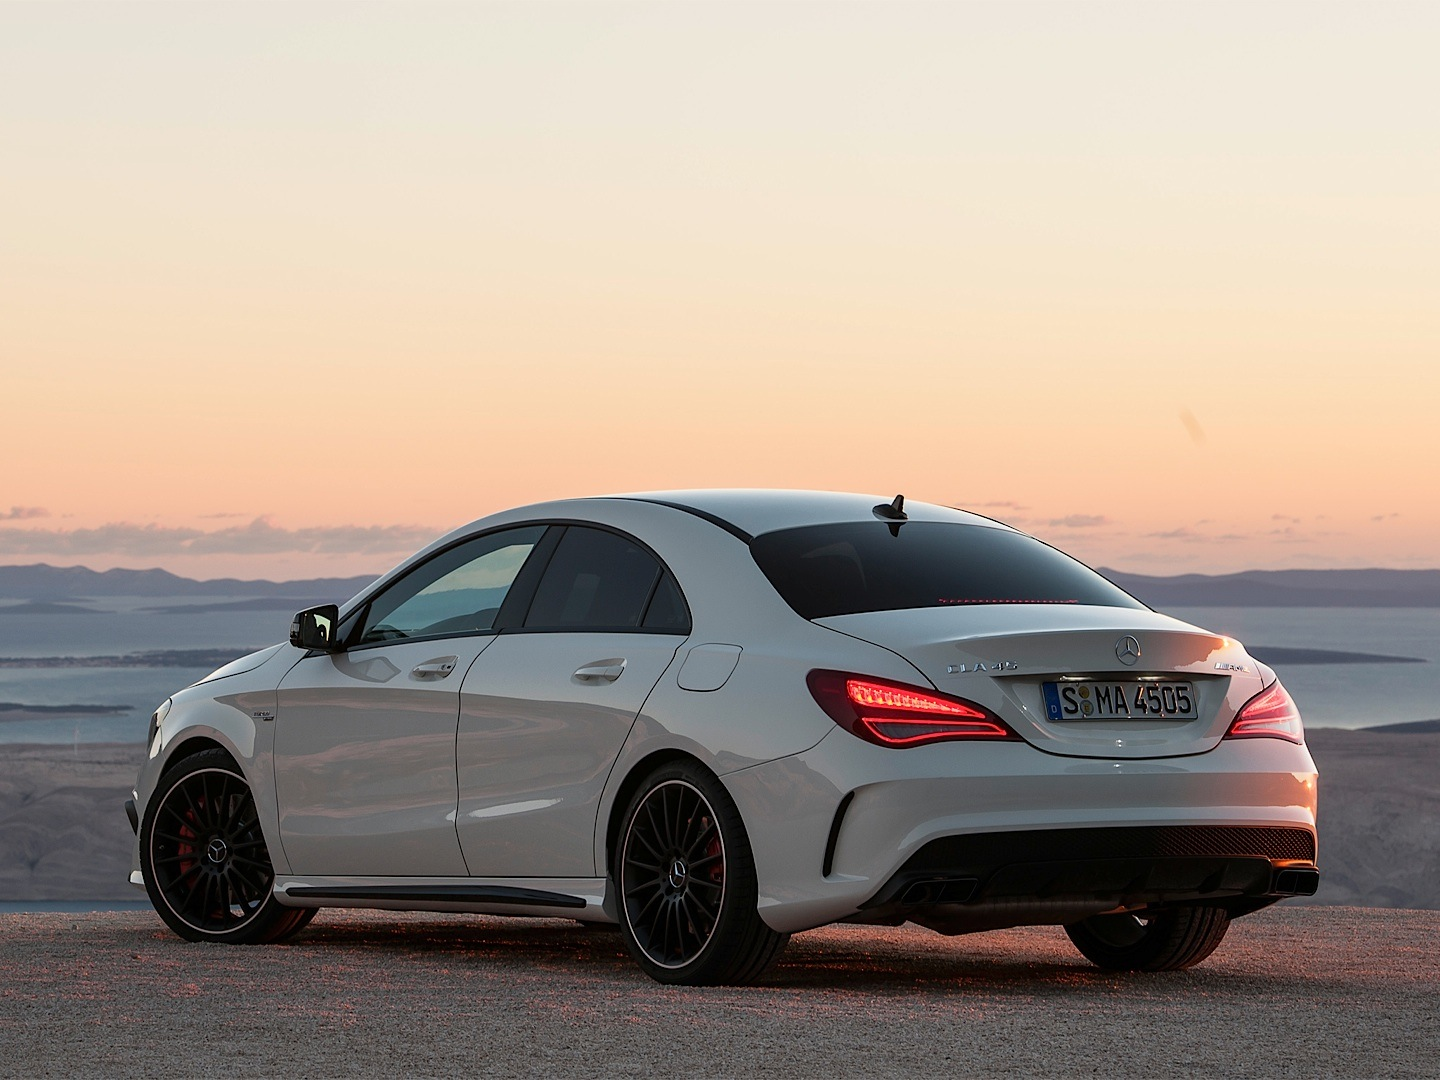 Mercedes benz cla 45 amg driven by vadimauto autoevolution for How much is a mercedes benz amg